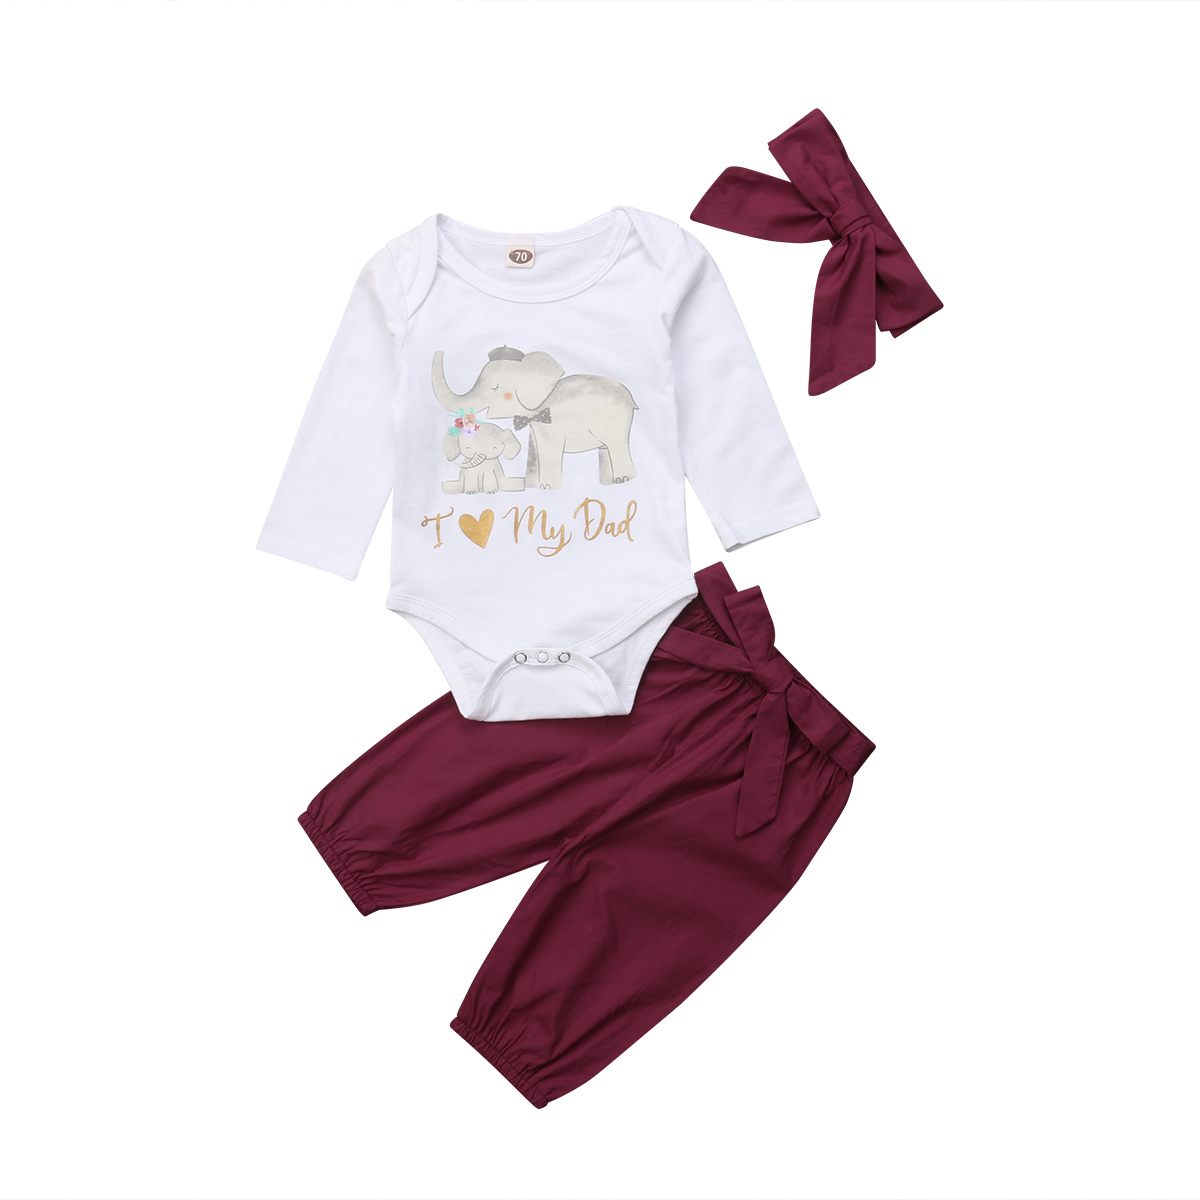 2pcs Spring Newborn Baby Clothing Set Long Sleeve Sweatshirt Pants Outfits F07#